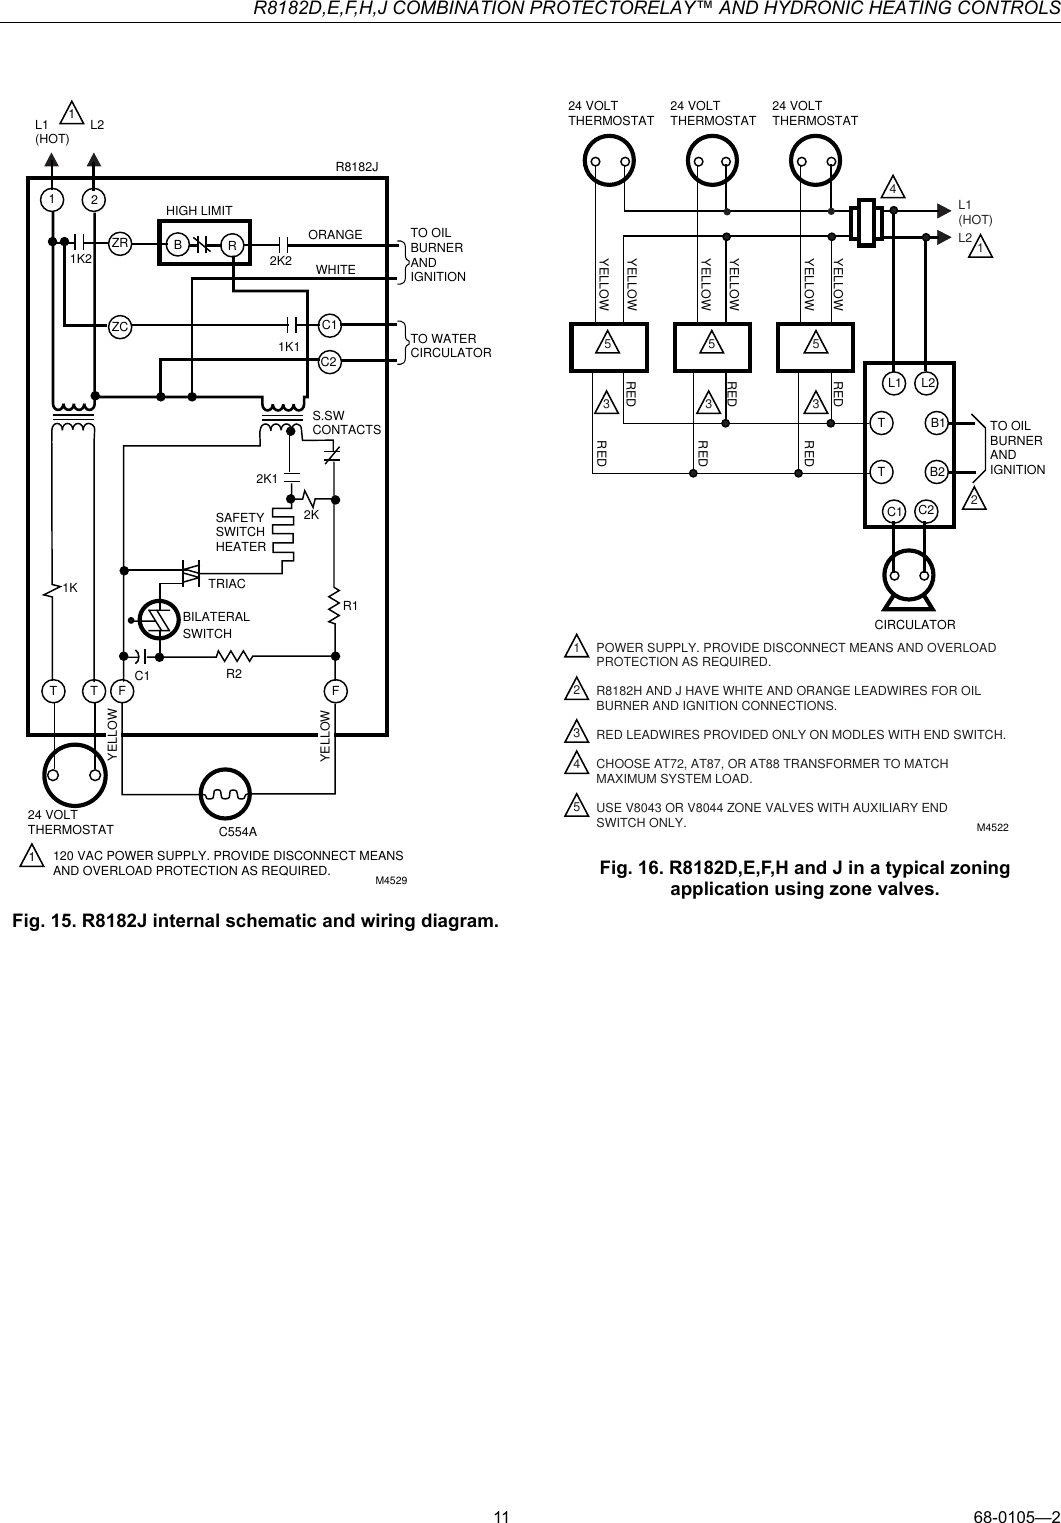 hight resolution of honeywell r8182d users manual 68 0105 r8182d e f h j combination protectorelay and hydronic heating controls